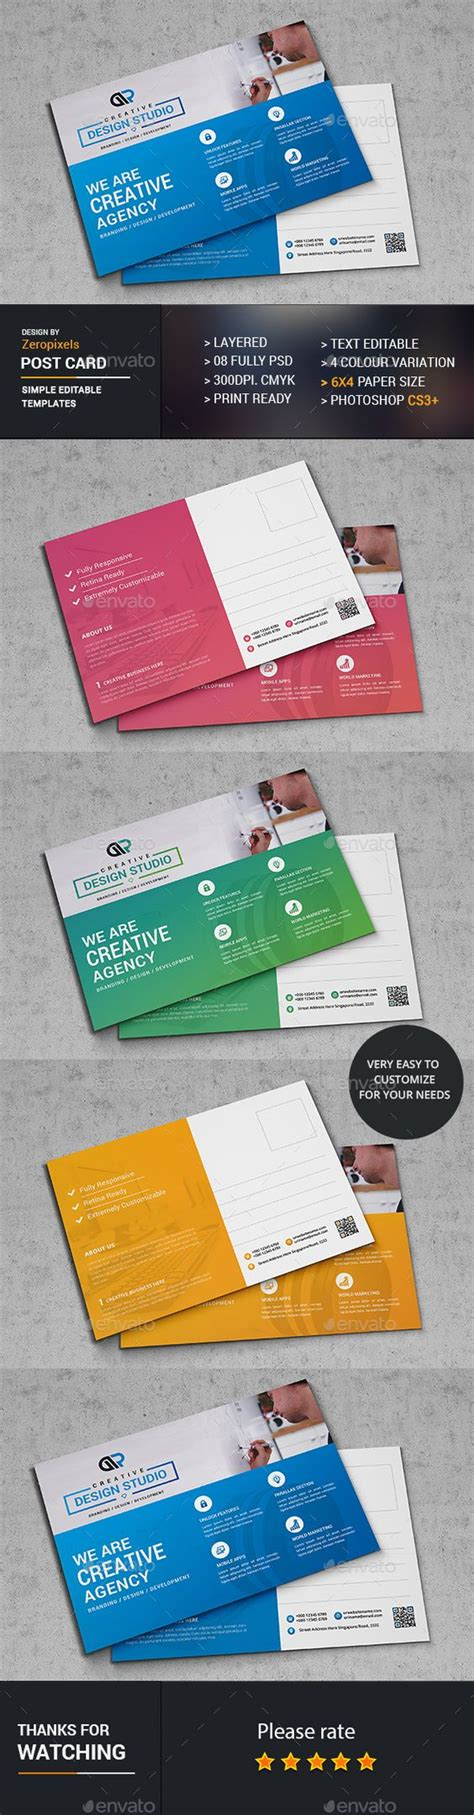 postcard template graphicriver web postcard template psd here http